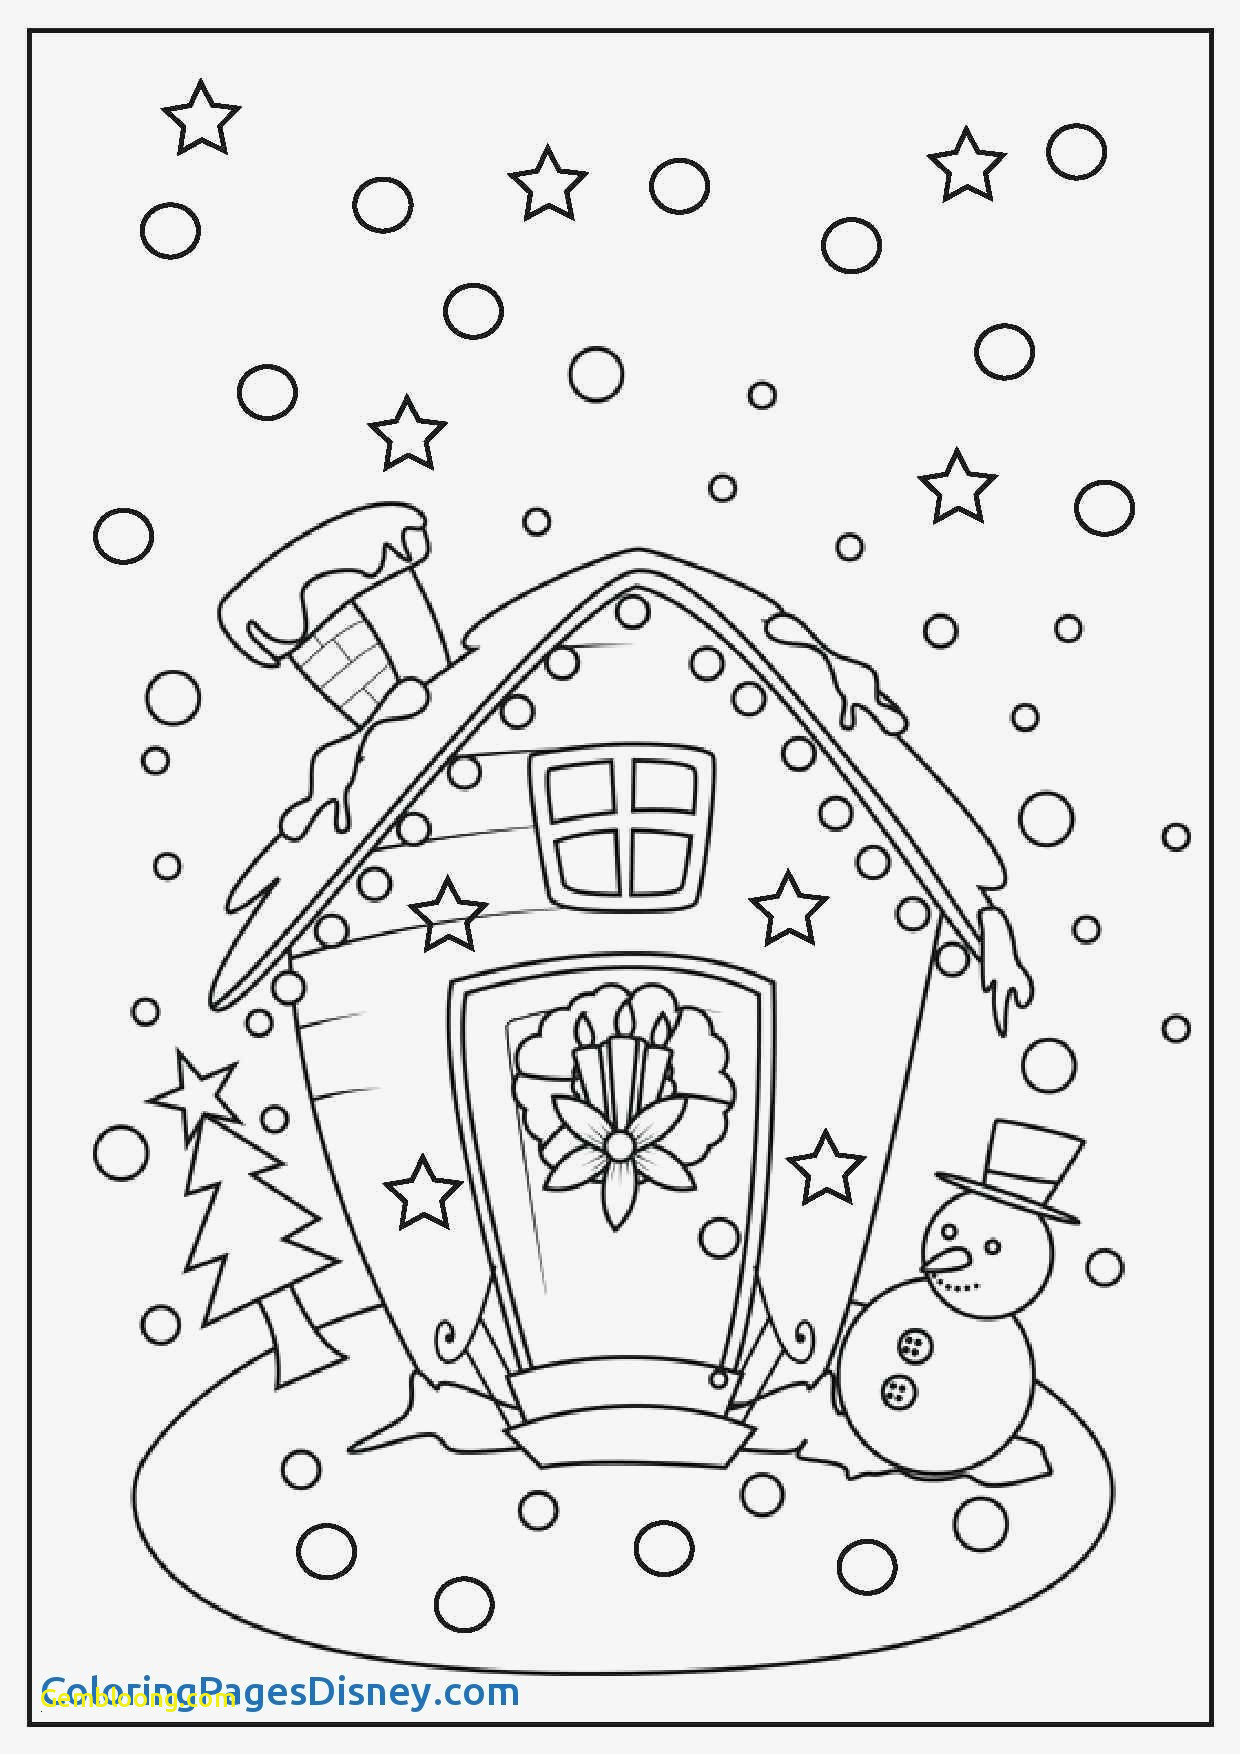 Christmas Images Coloring Book With Printable Pages For Kids Stylish